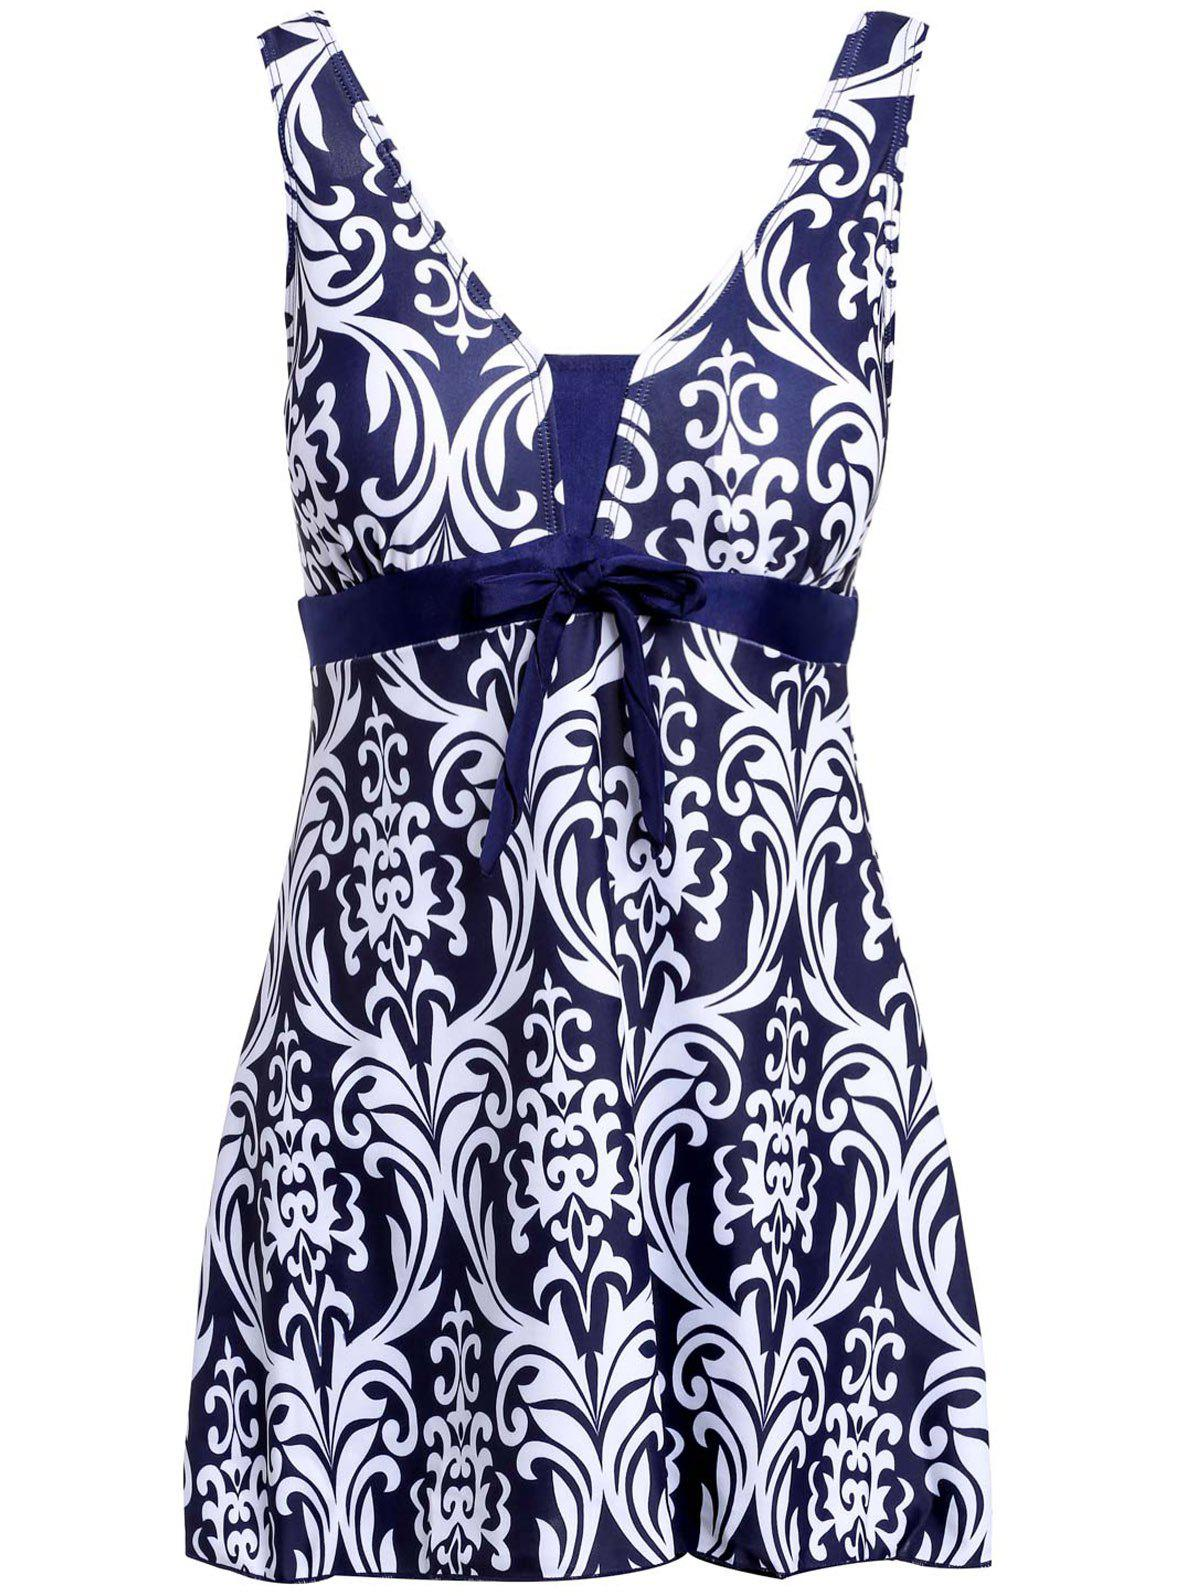 Ethnic Style Women's V-Neck Bowknot Embellished Printed One-Piece Swimsuit